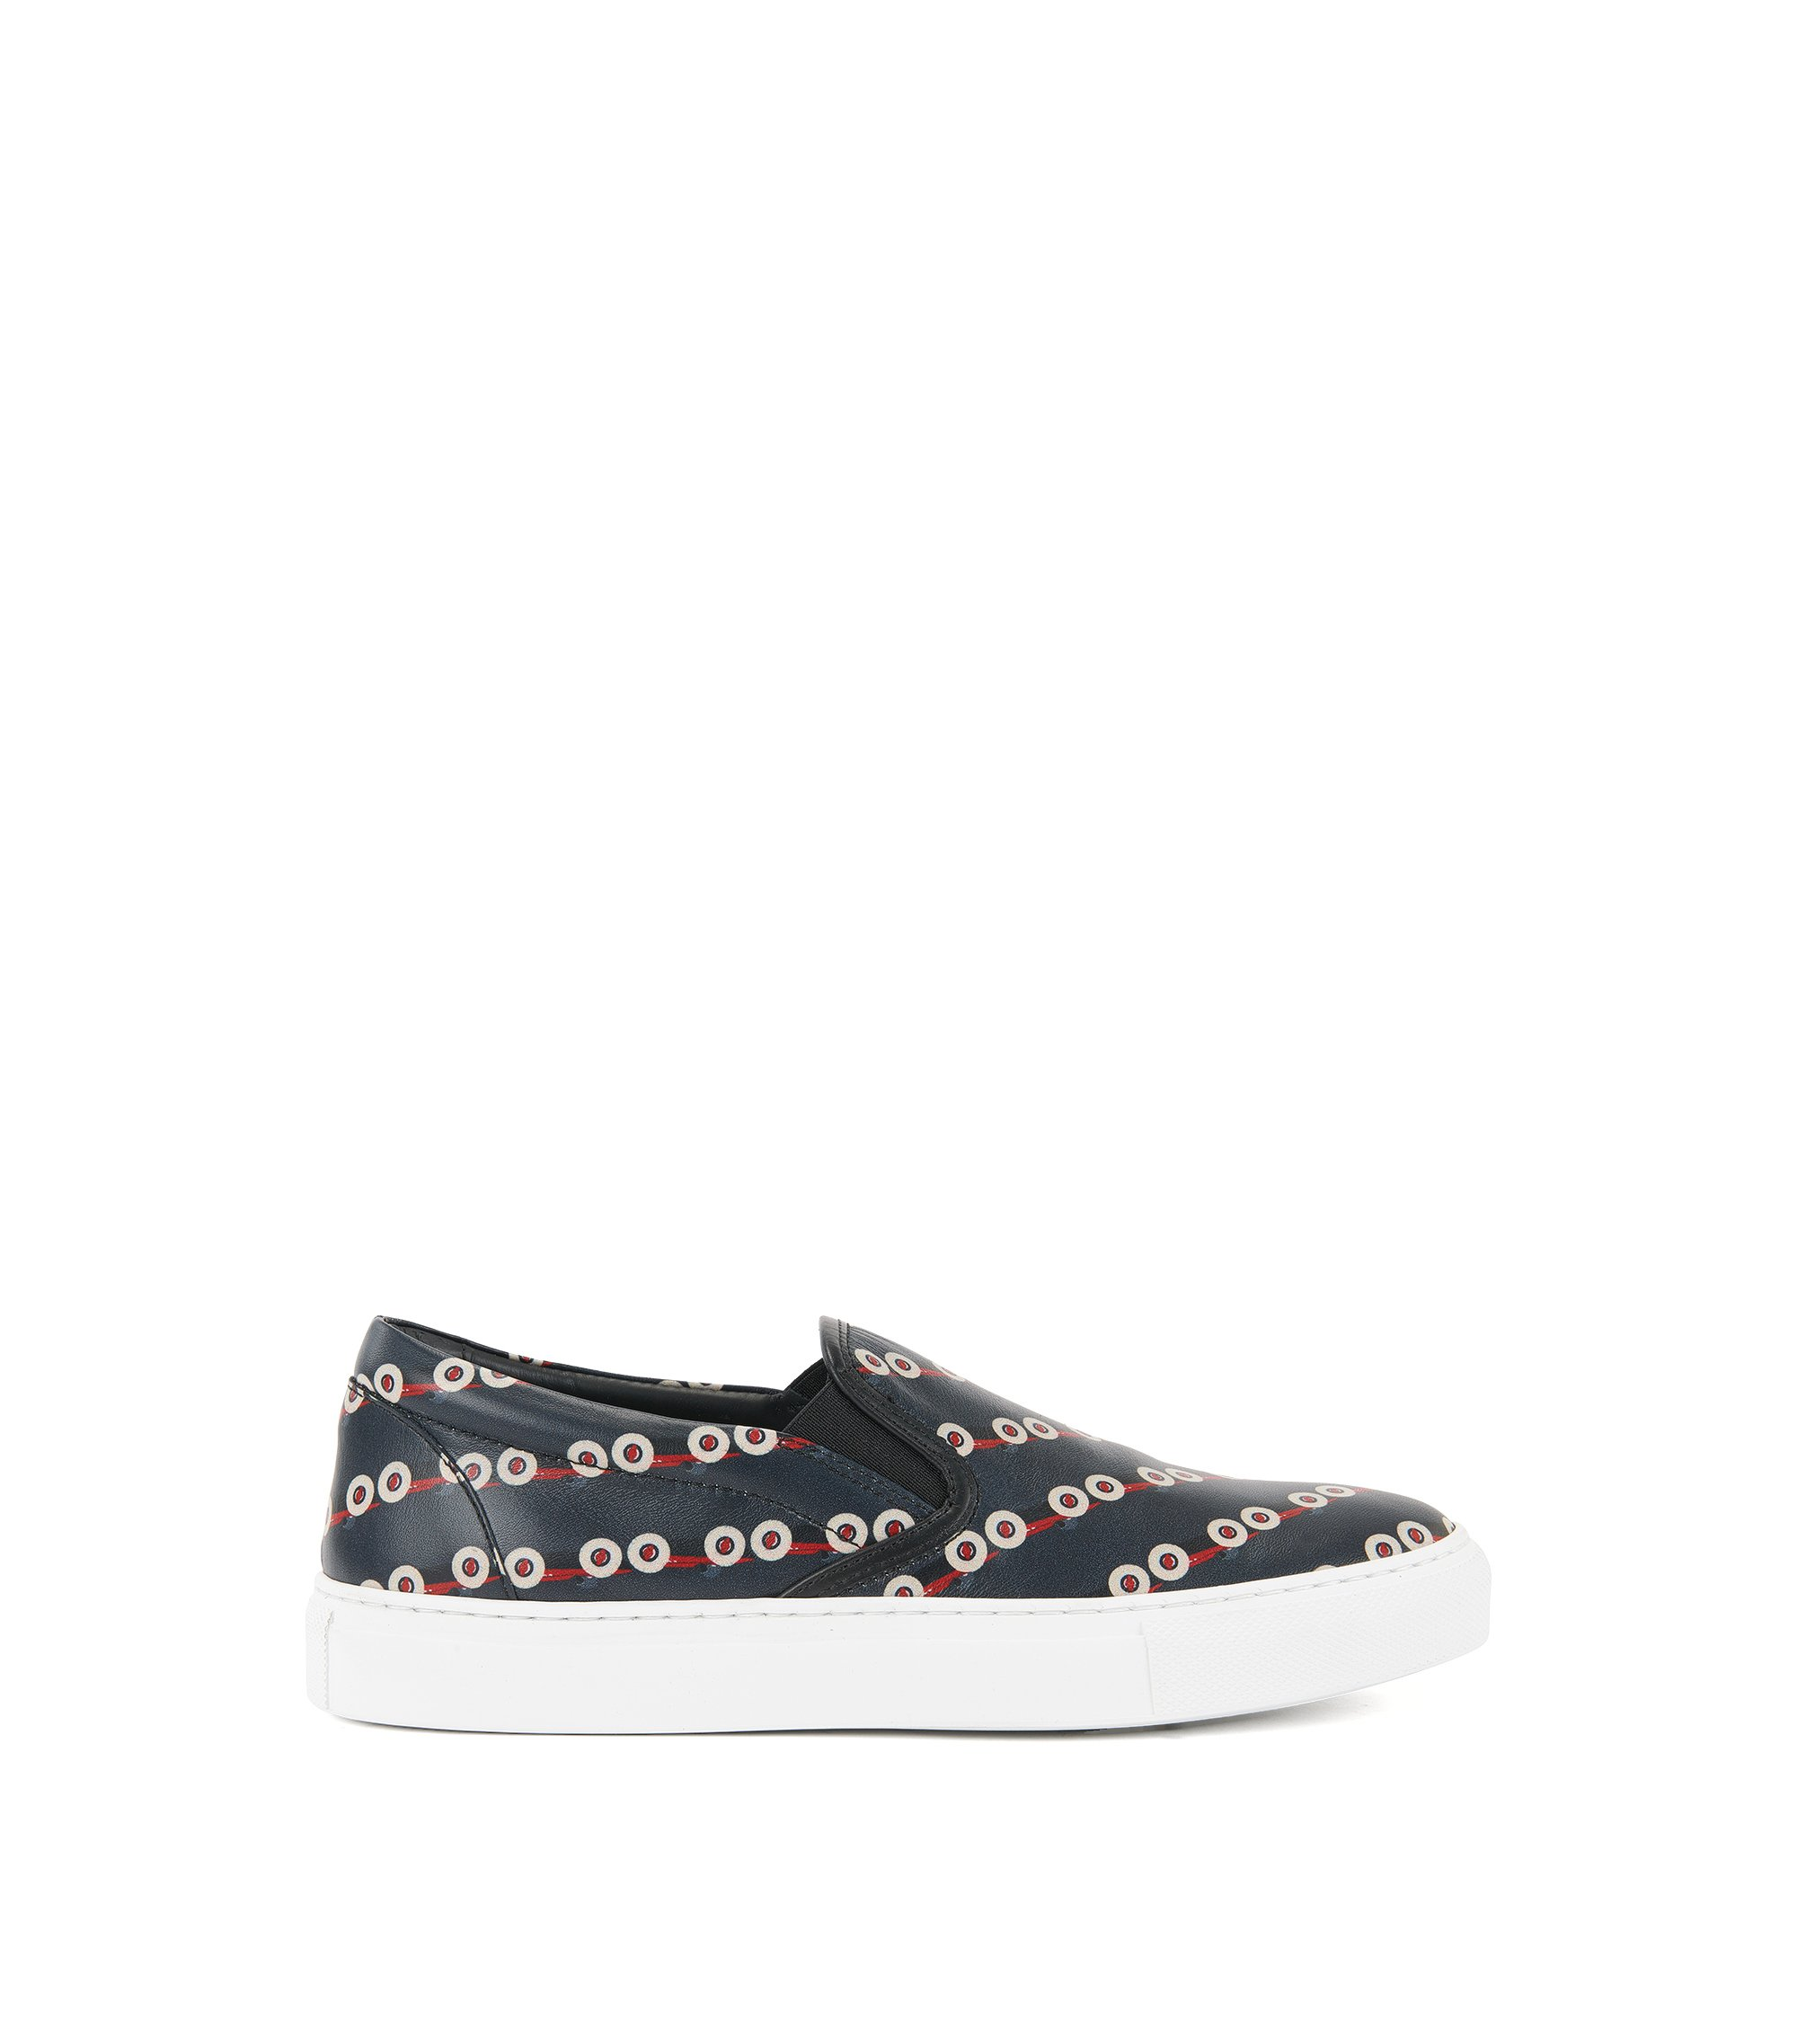 Slip-on leather trainers with race car print, Black